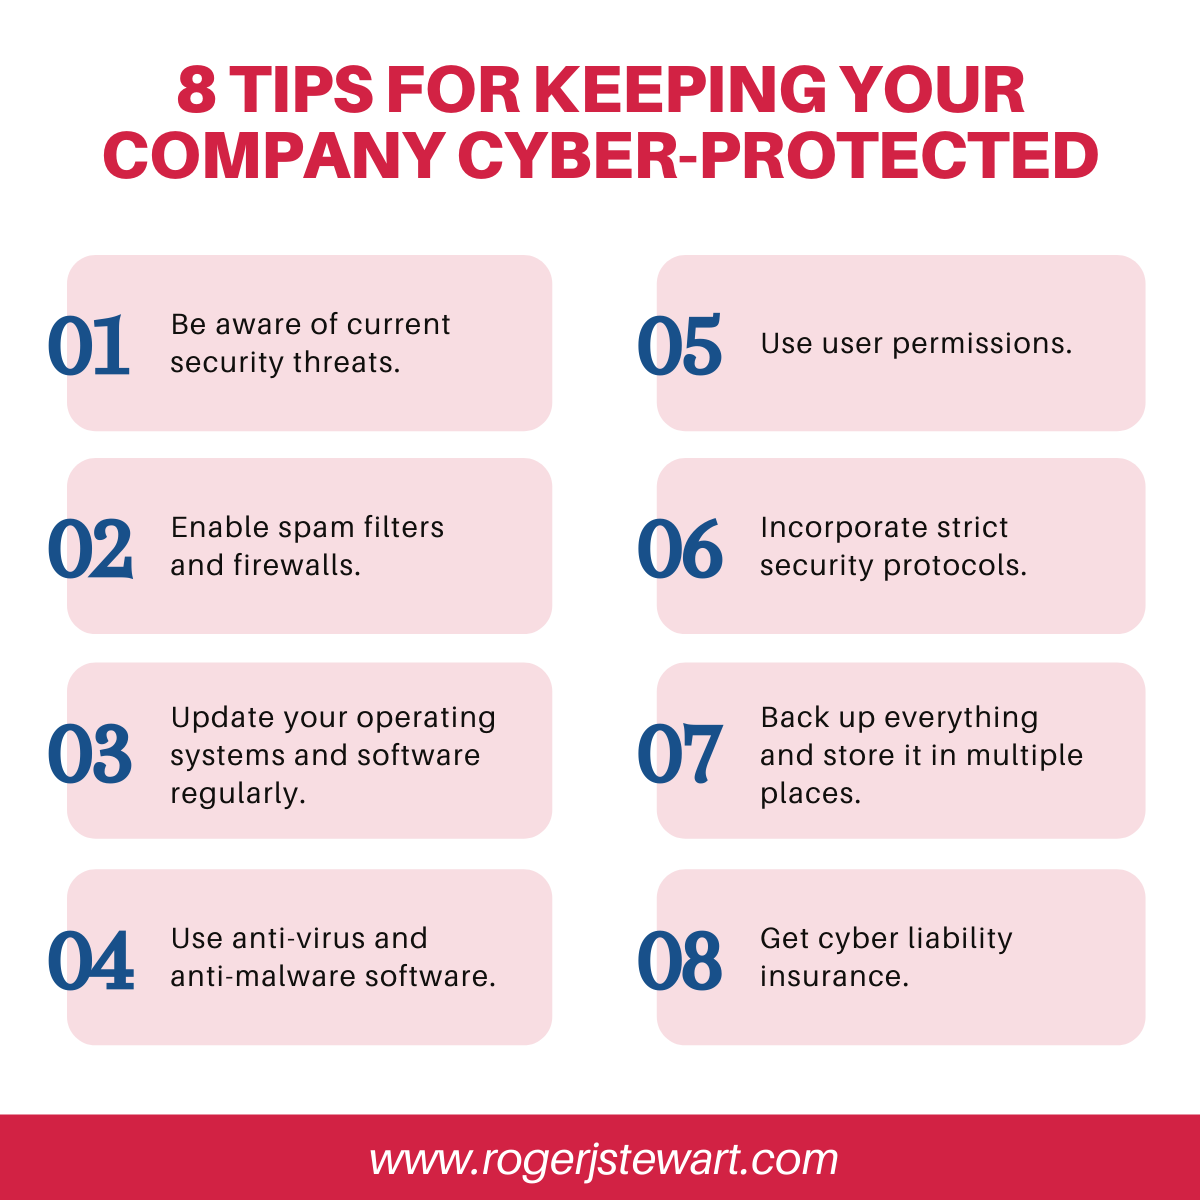 8 Tips for keeping your company cyber-protected